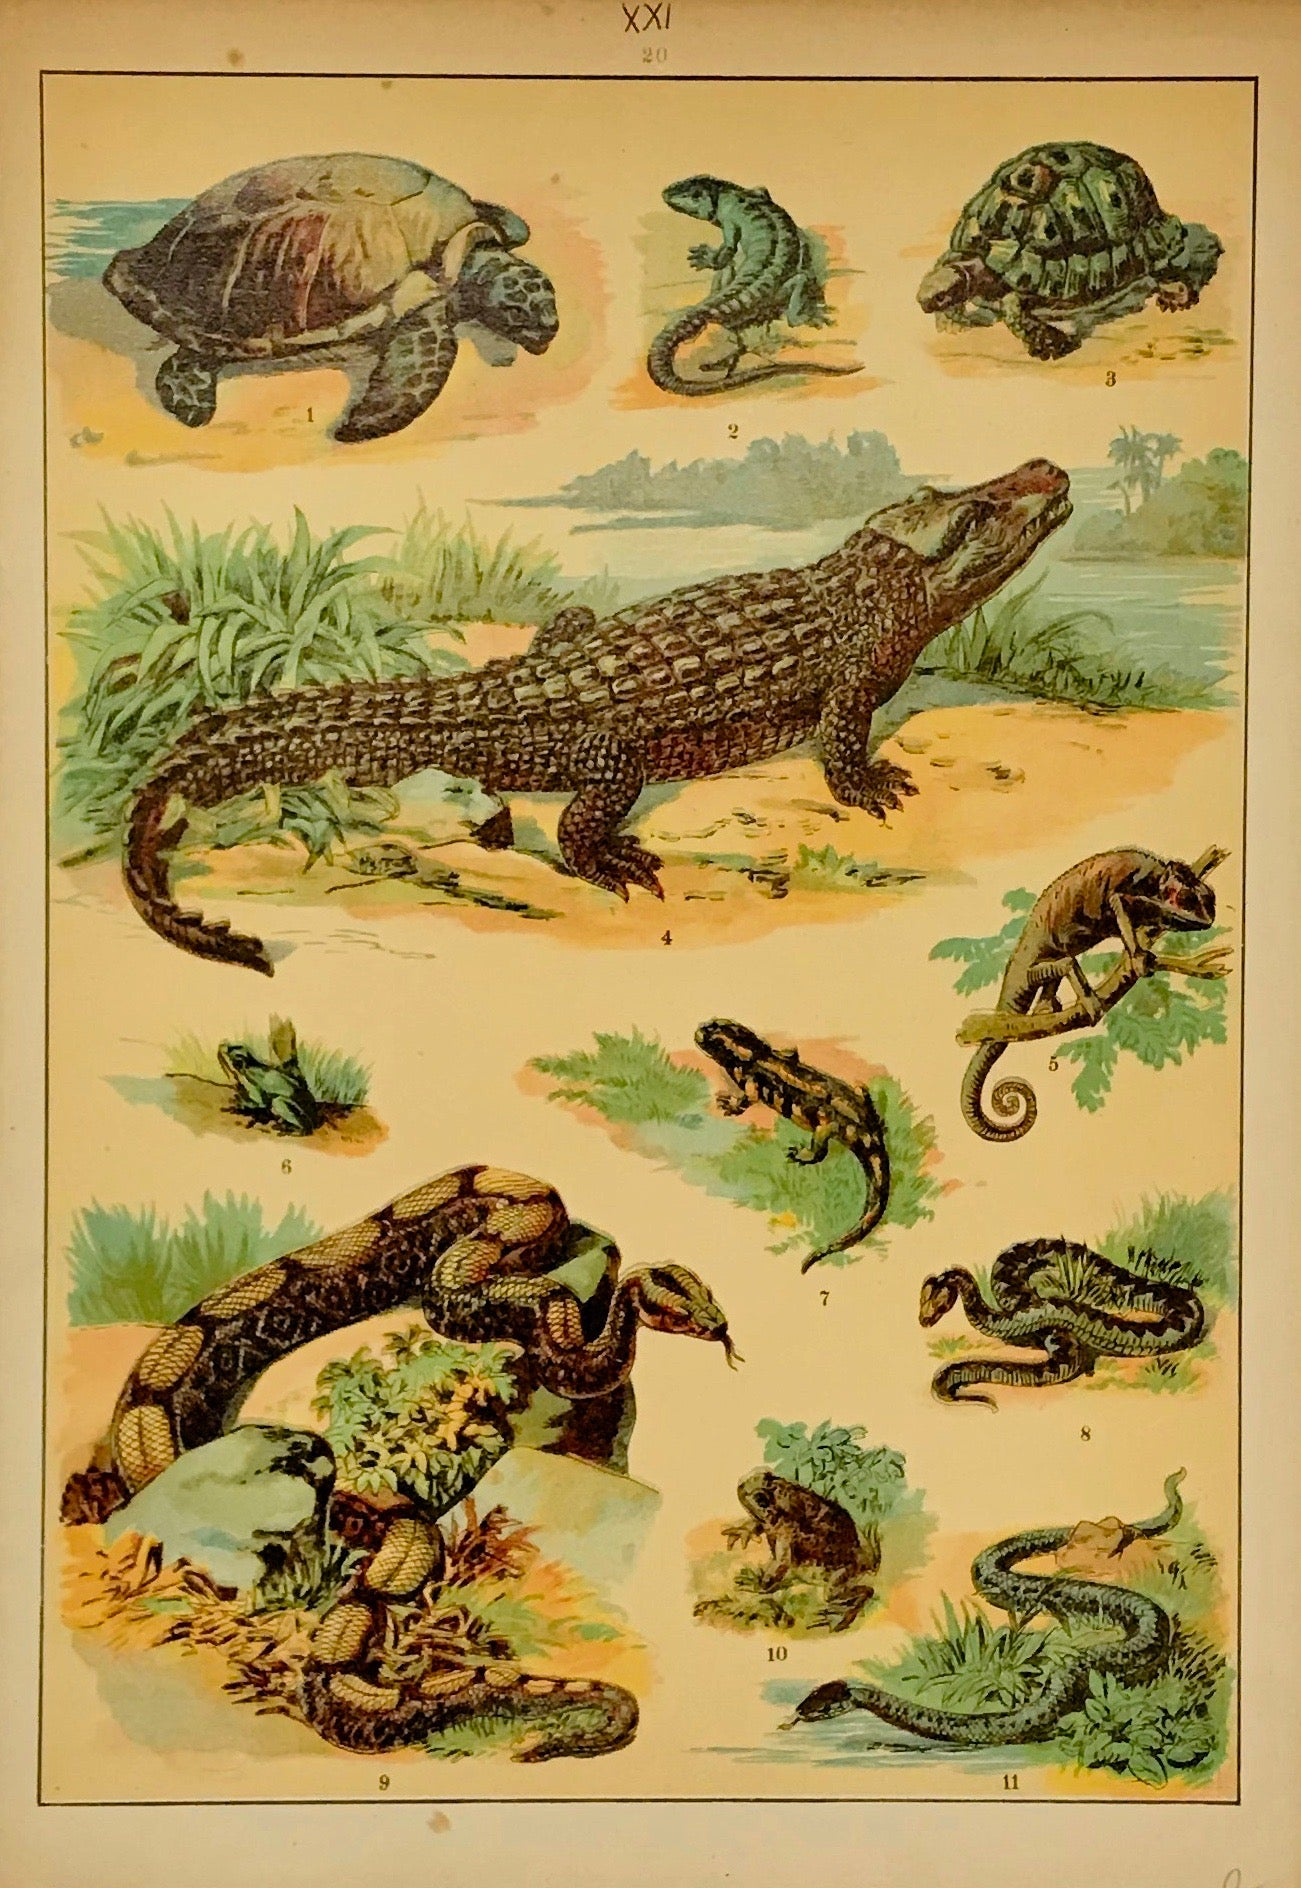 No title  Chromolithograph ca 1900 showing a wide range of reptiles. Light browning on margin edges.